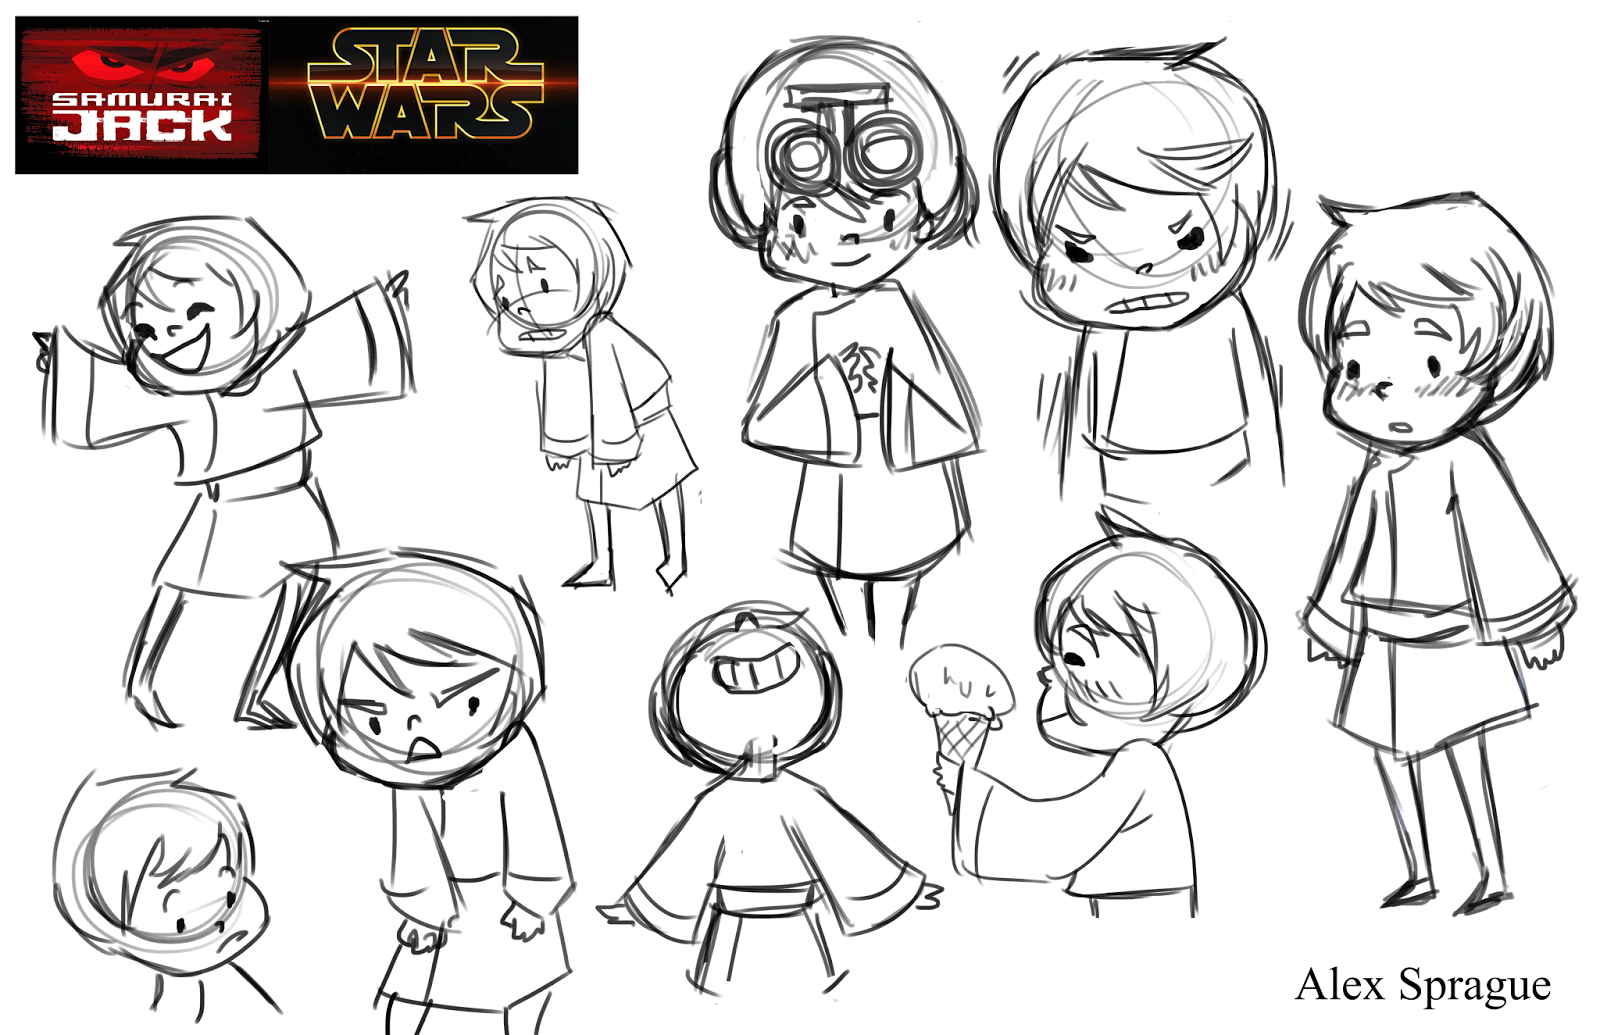 2016 Character Concepts: Star Wars x Samurai Jack (Week 4)